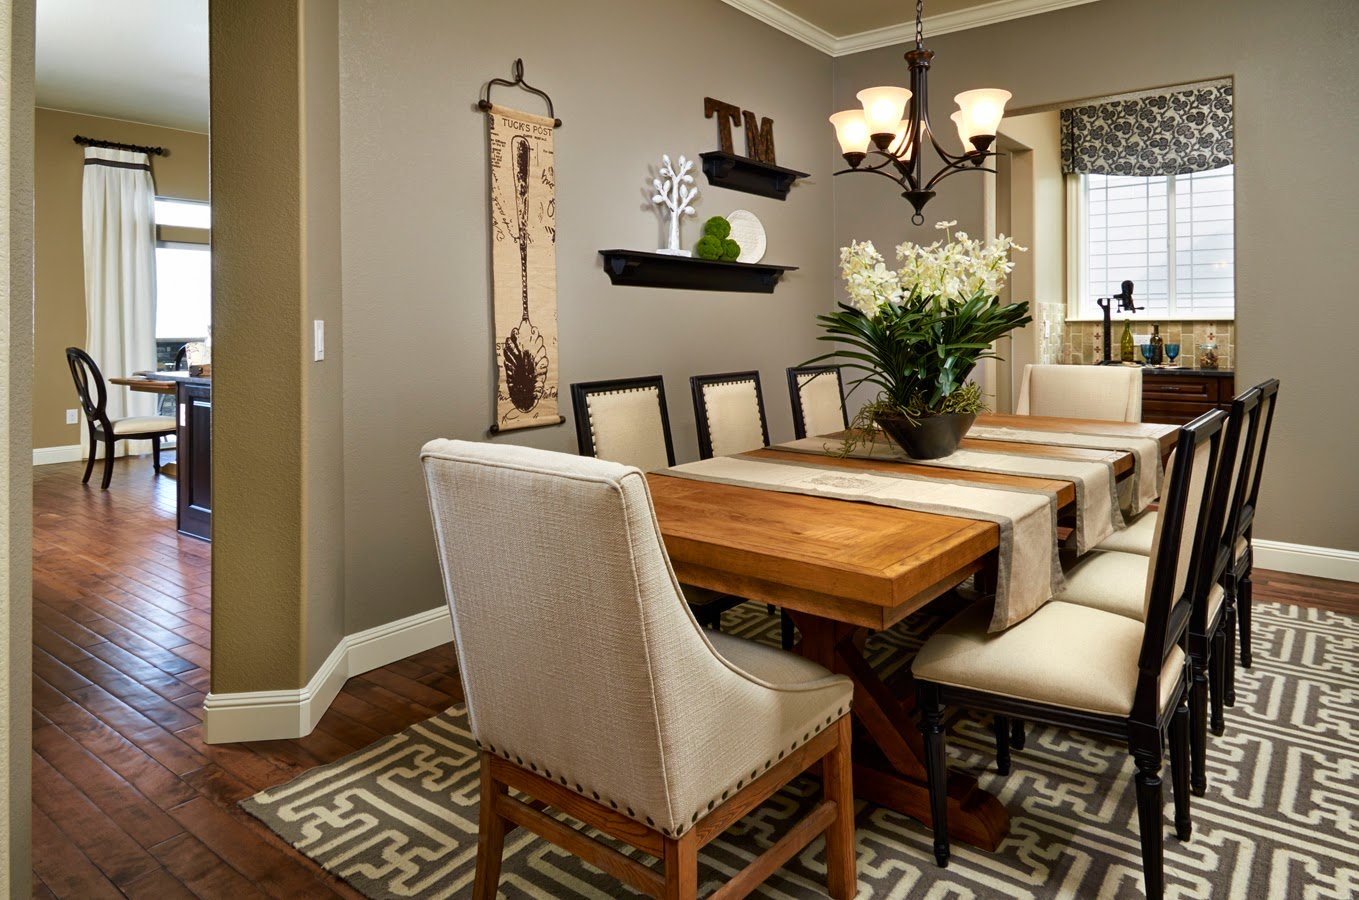 Dining room furniture arrangement ideas and tips kukun for Dining room accessories ideas